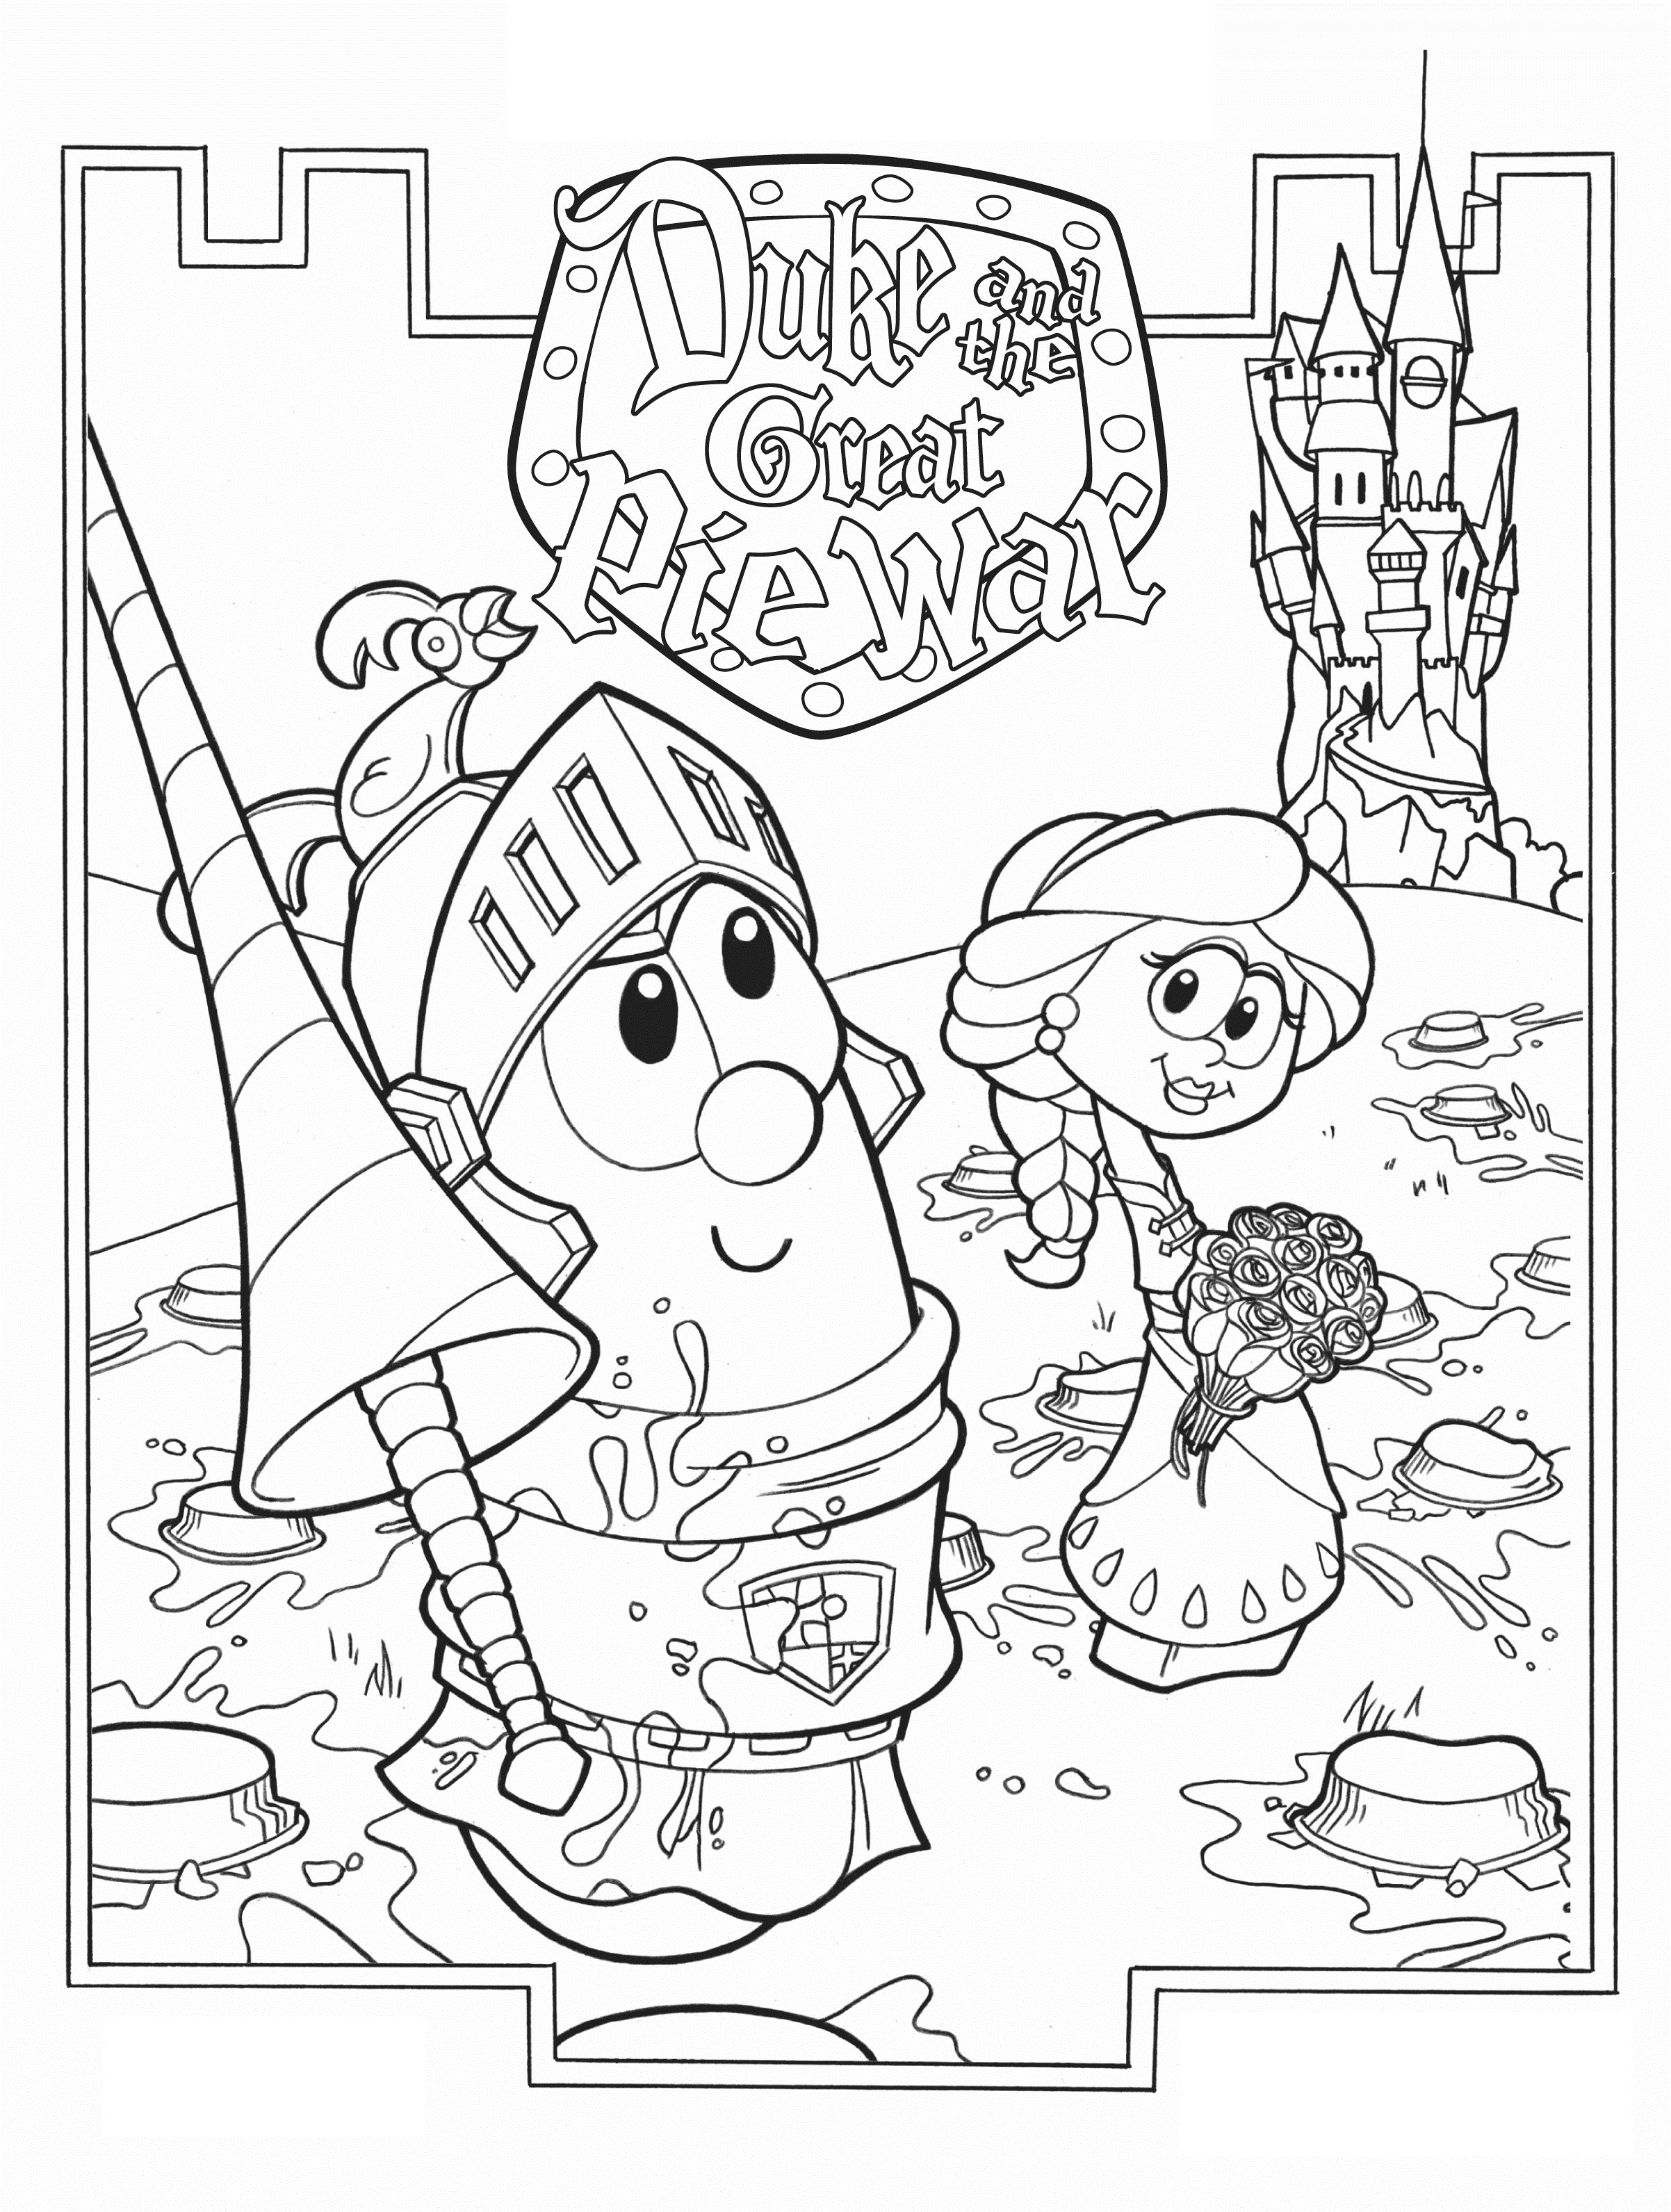 veggietales coloring pages the ultimate veggietales web site coloring coloring veggietales pages